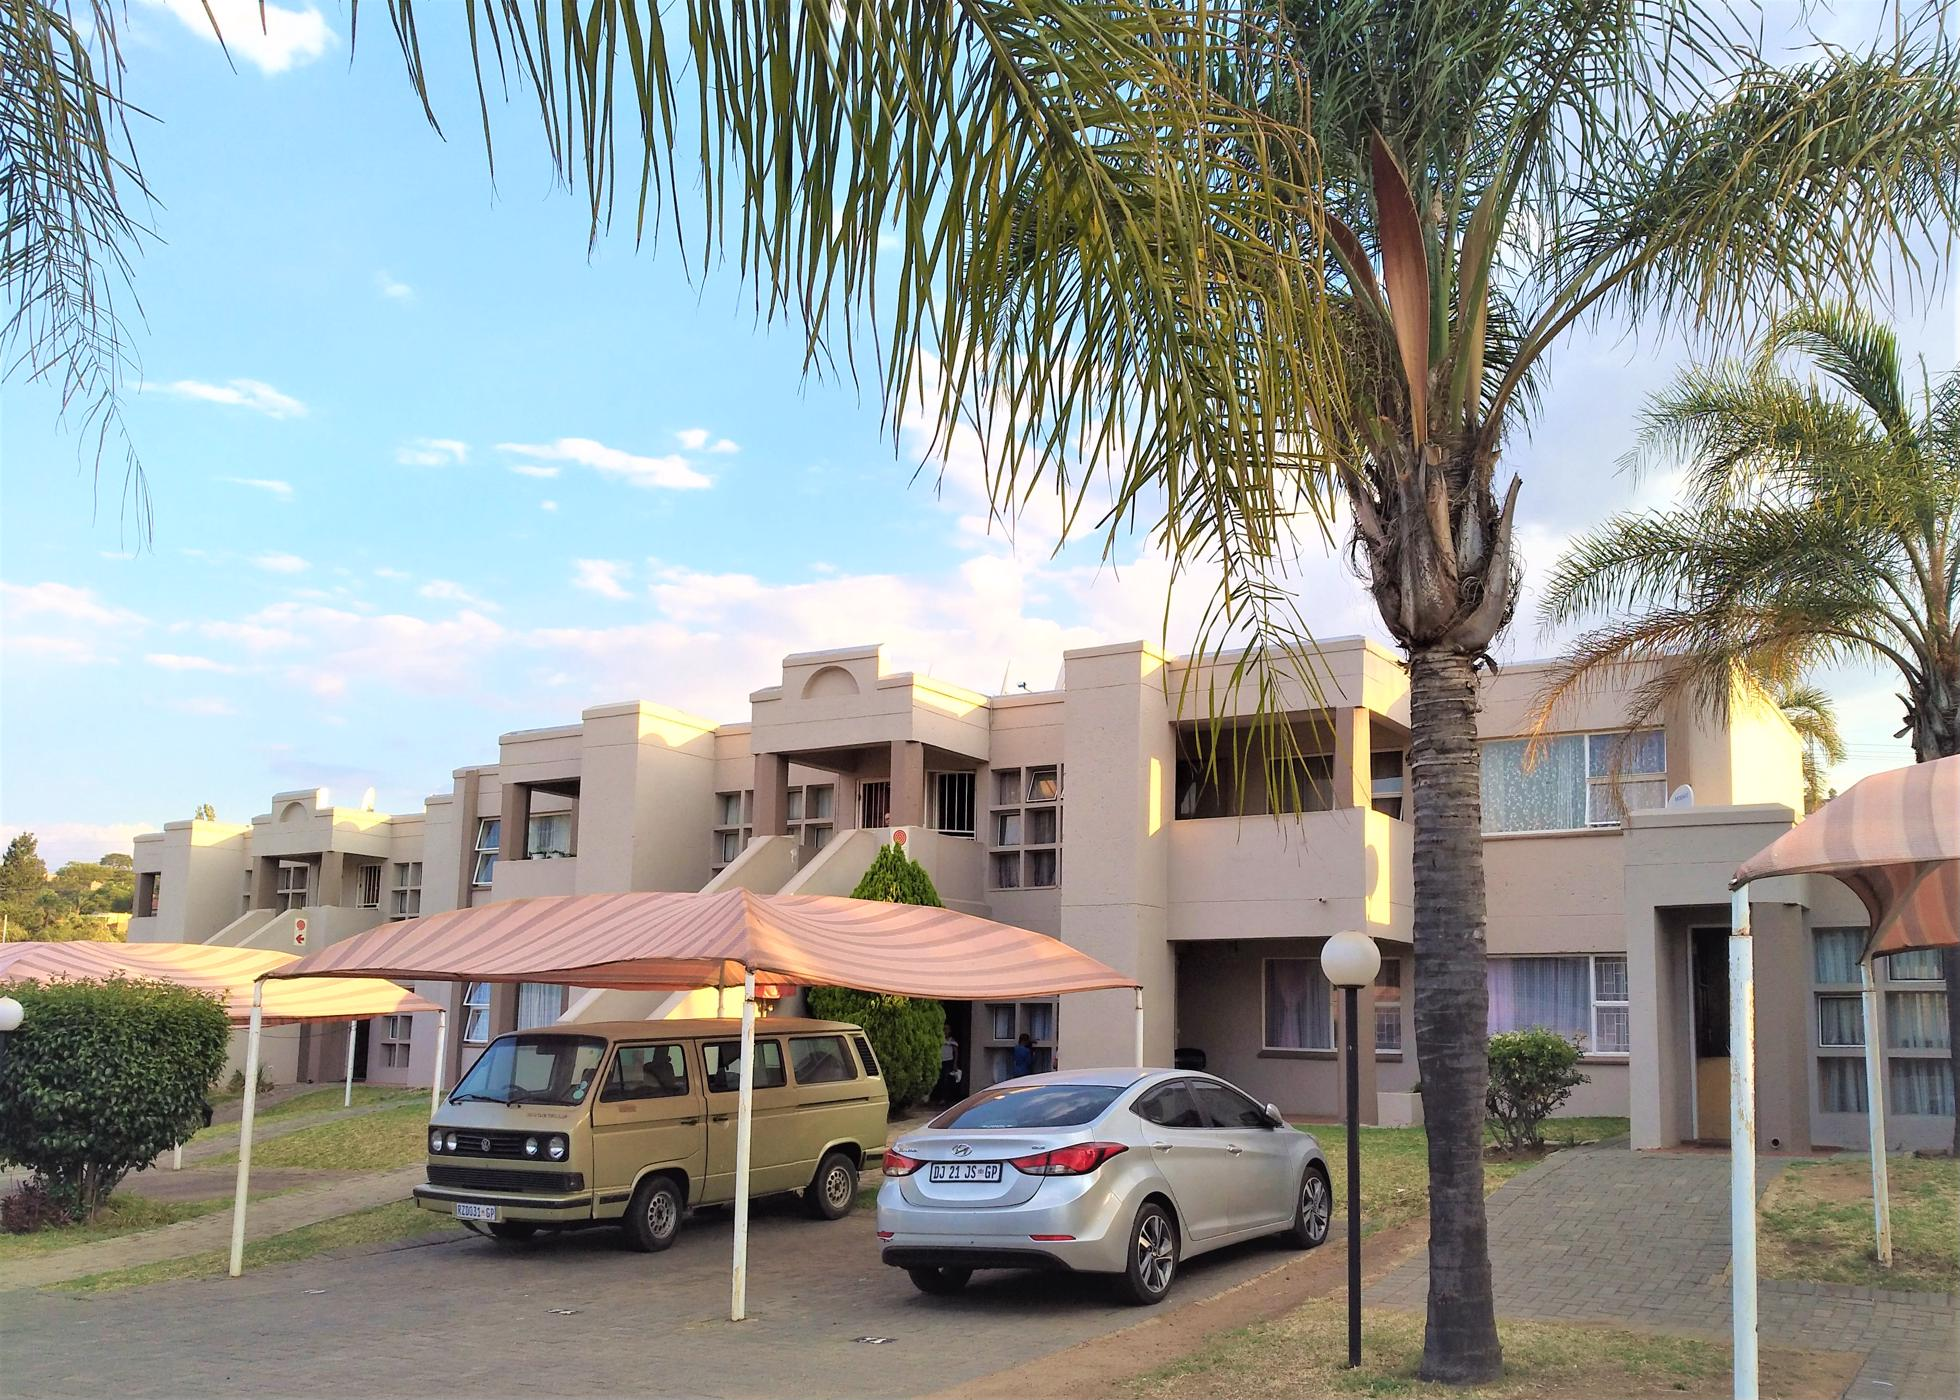 https://listing.pamgolding.co.za/images/properties/201810/1077670/H/1077670_H_11.jpg